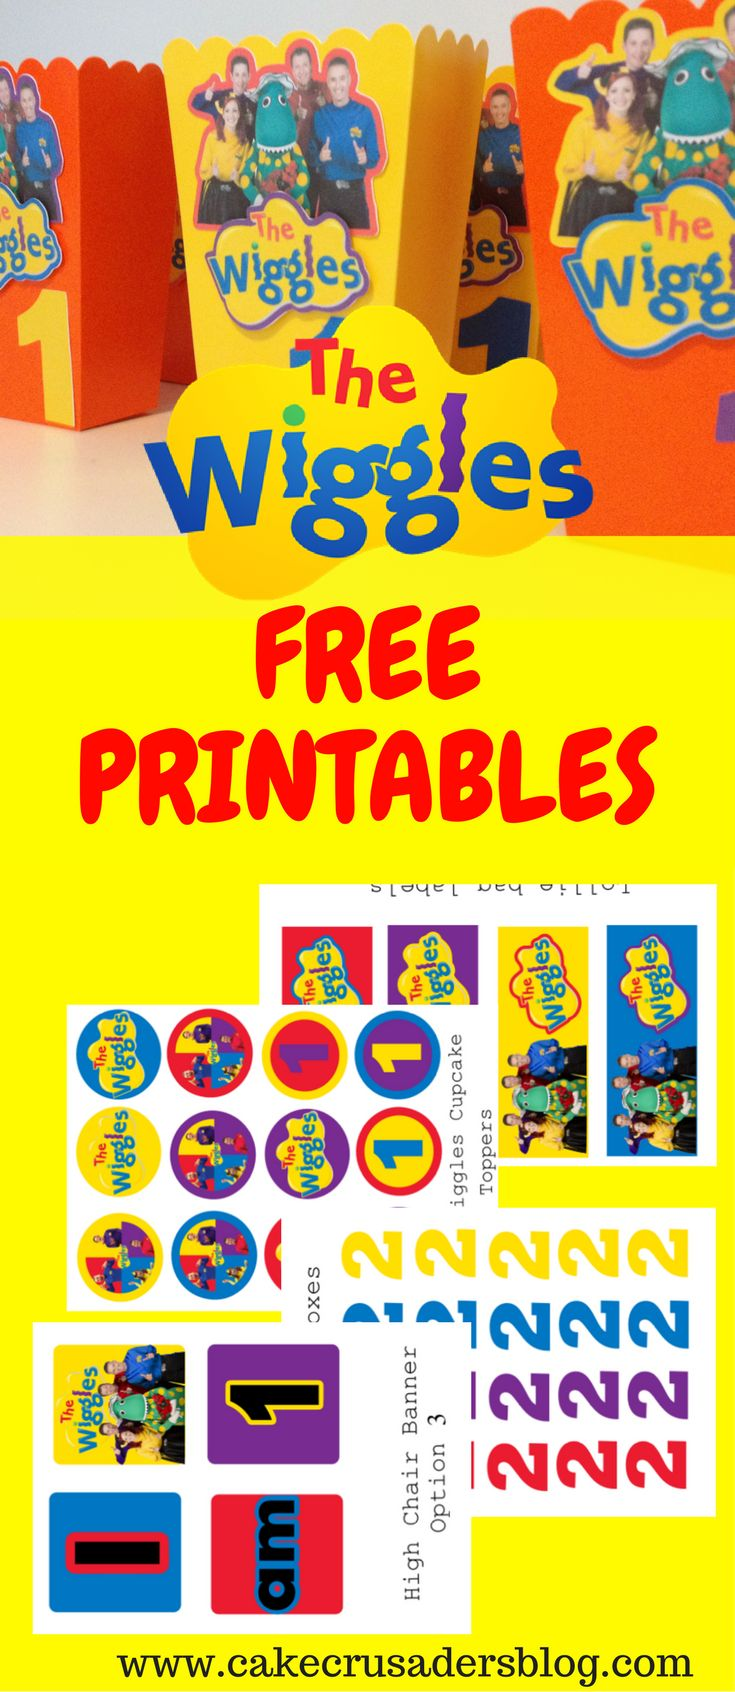 The Wiggle Birthday party decoration. Awesome Free printables and some great ideas